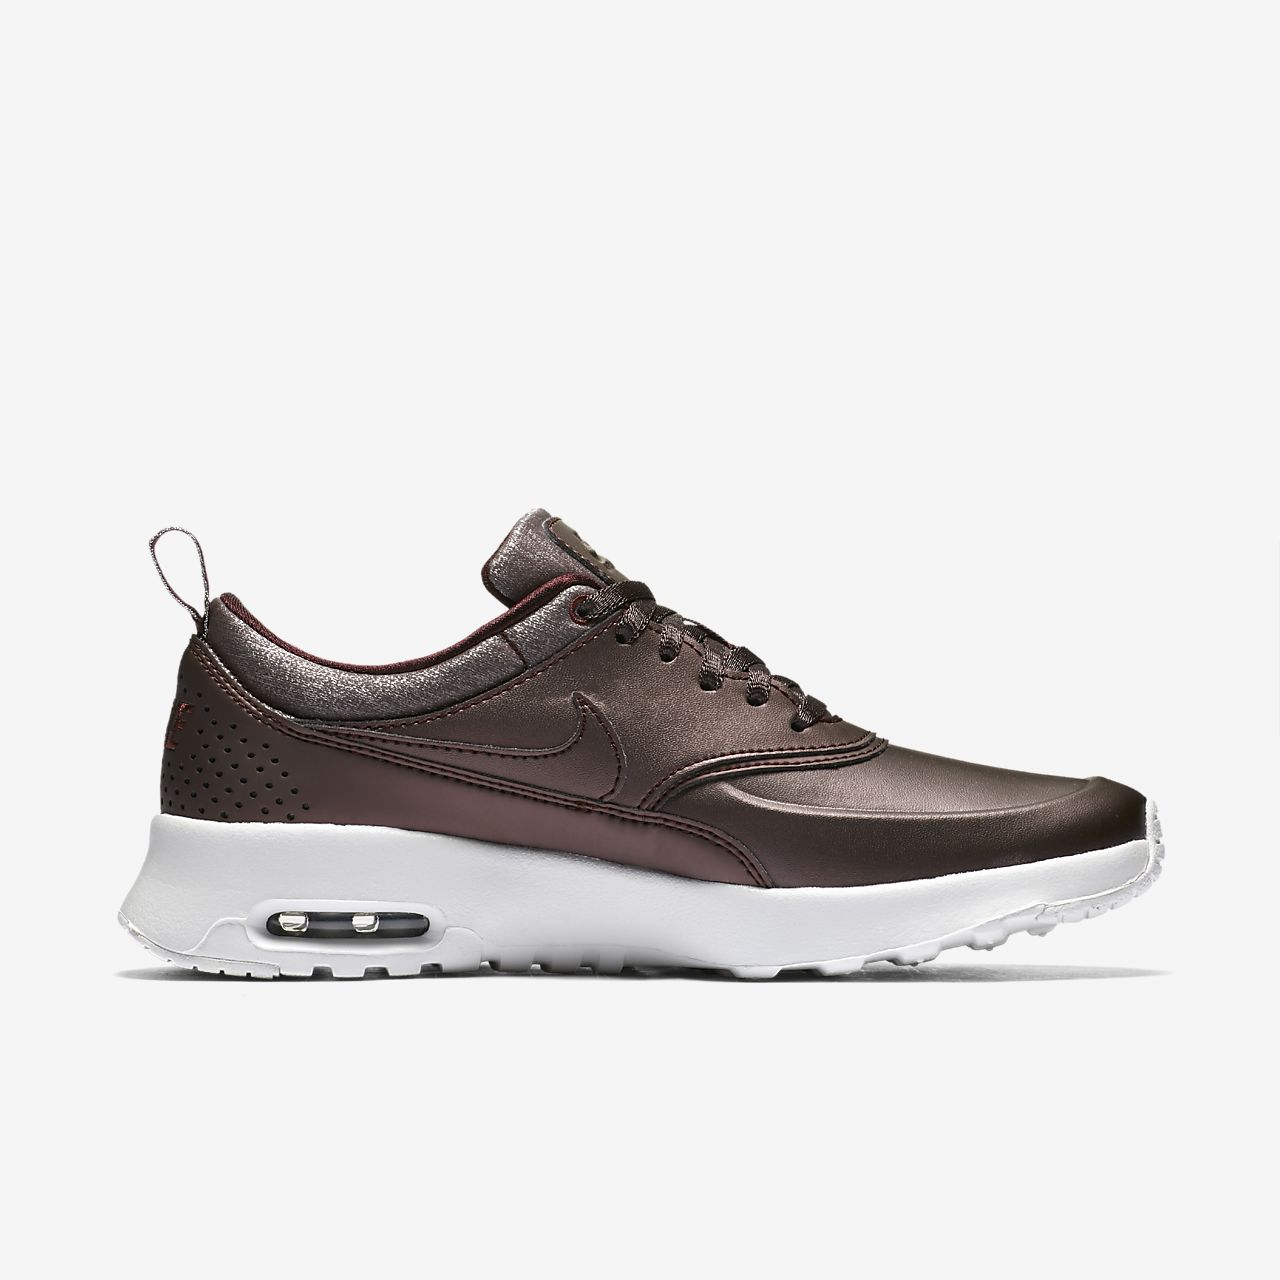 nike air max thea premium women 39 s shoe at. Black Bedroom Furniture Sets. Home Design Ideas